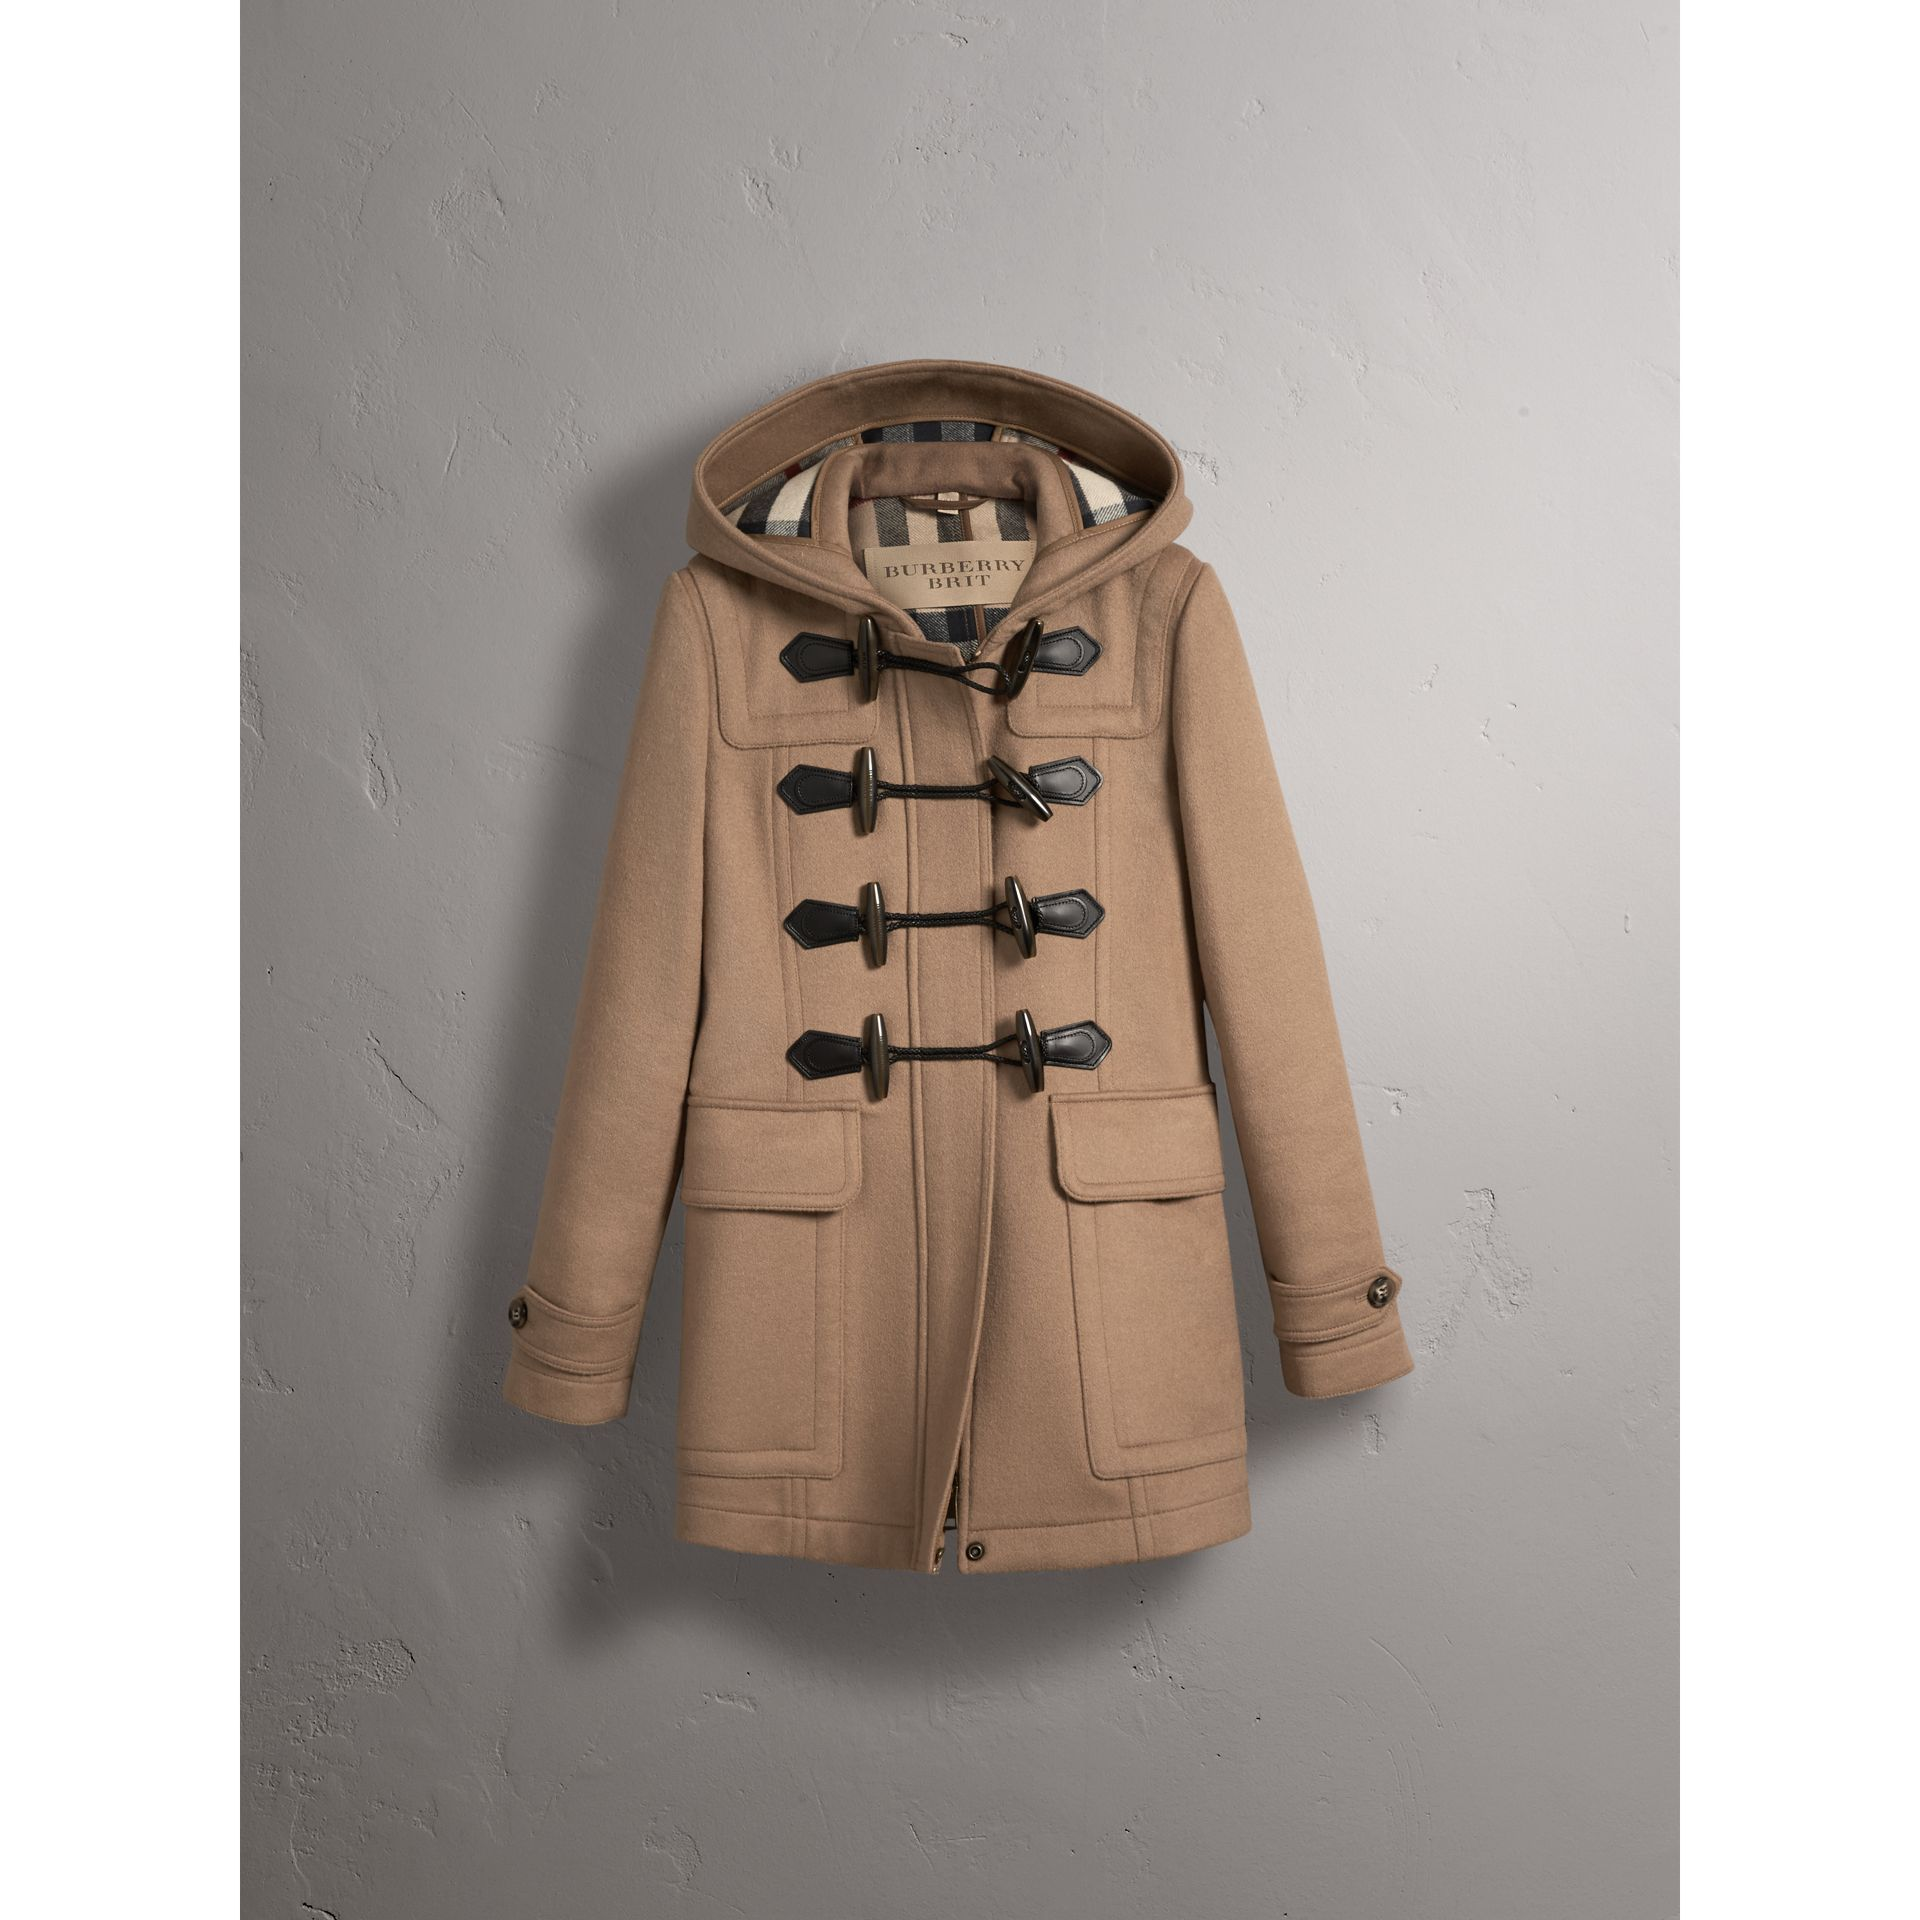 Fitted Wool Duffle Coat in New Camel - Women | Burberry Australia - gallery image 4